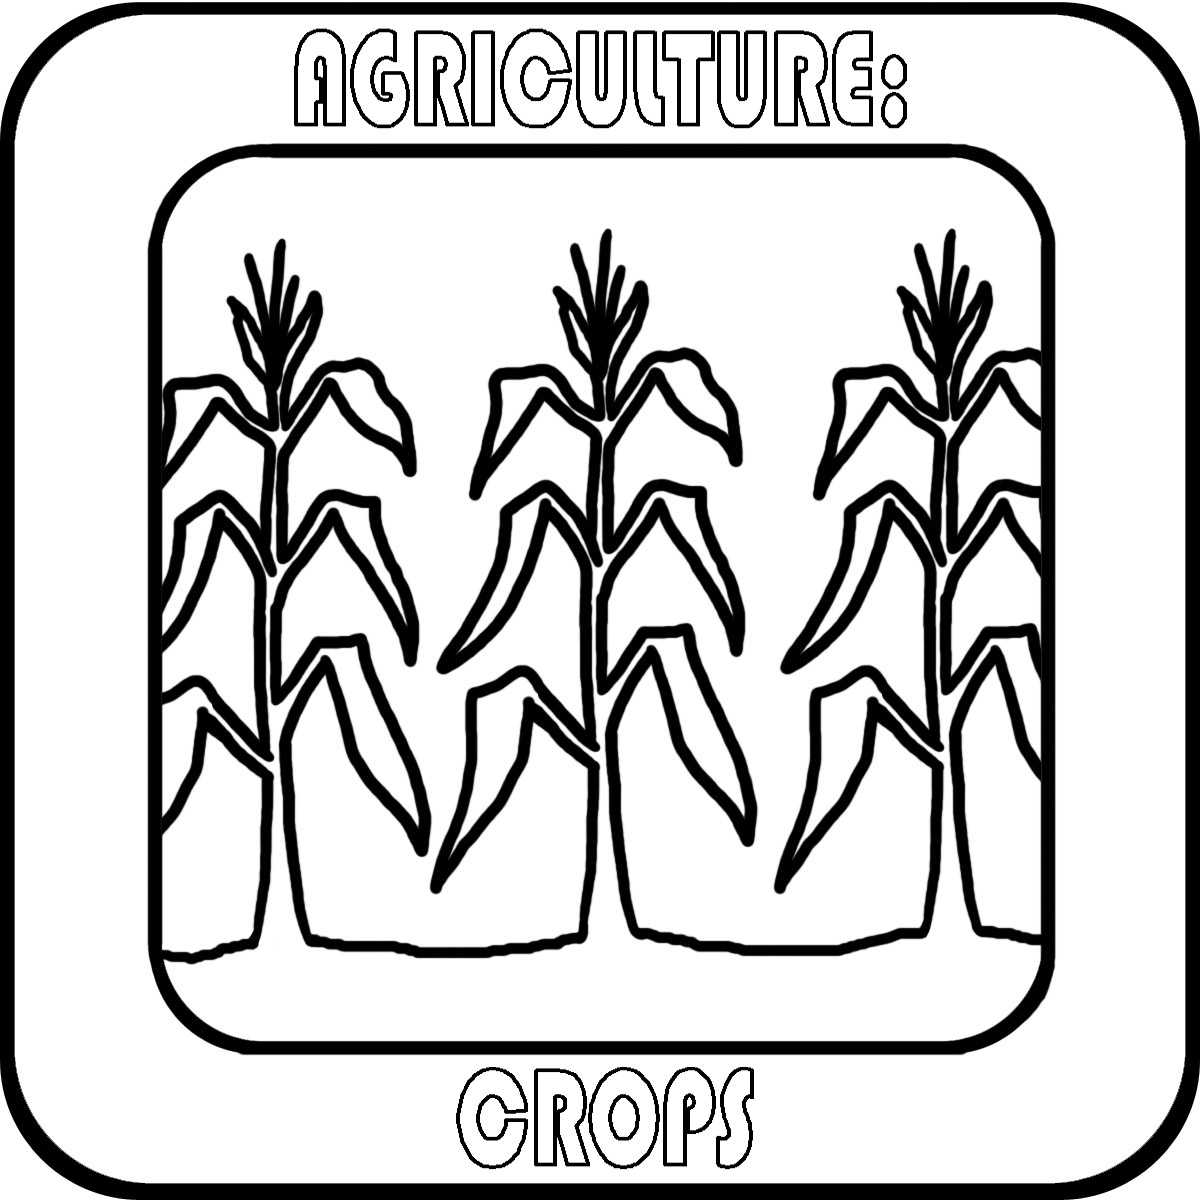 Farm agriculture nature clipart 20 free Cliparts